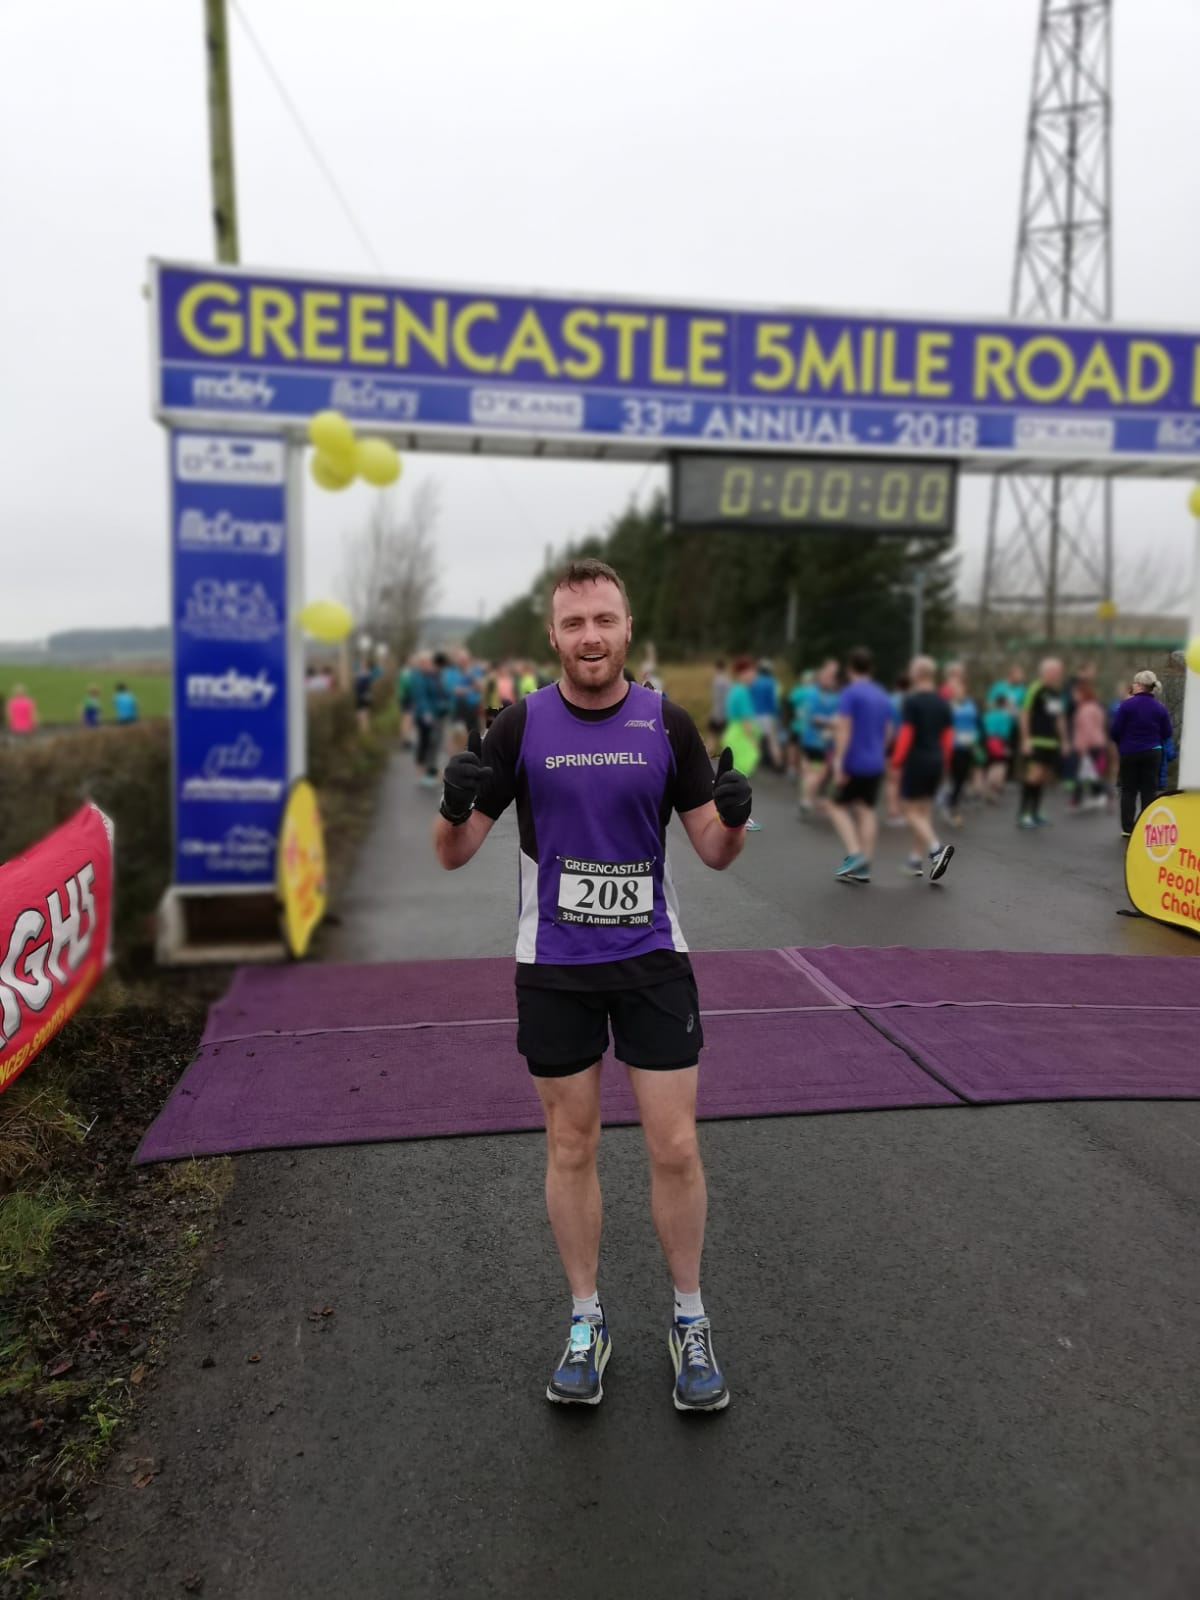 Alistair Shaw at the Greencastle 5 Mile Road Race